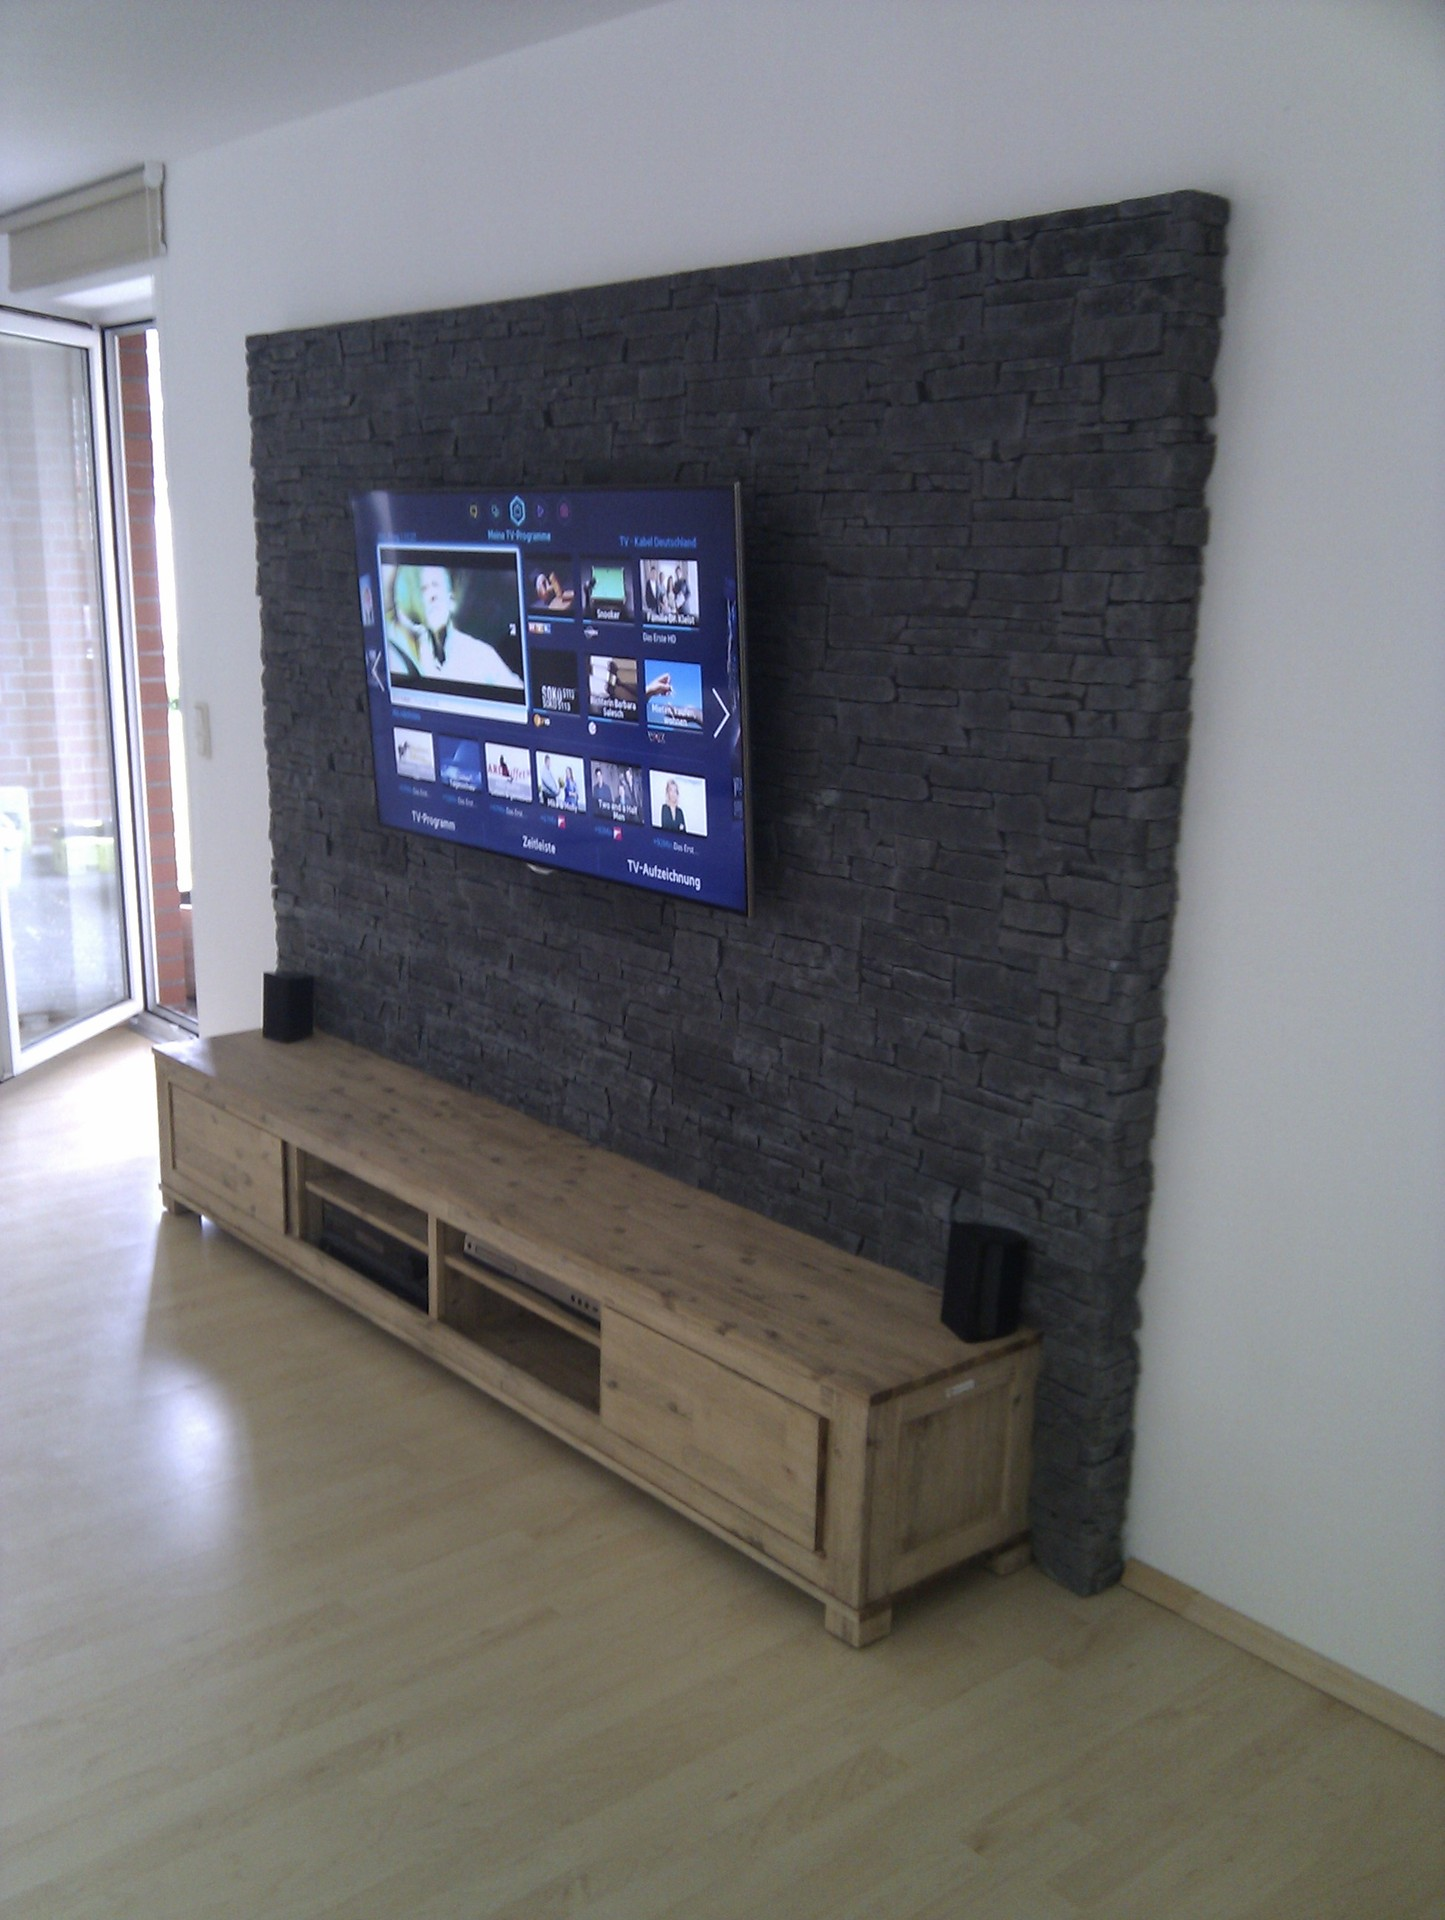 steinwand mediawand eigenbau eigenbau mediawand steinwand steinwandmultimedia hifi forum. Black Bedroom Furniture Sets. Home Design Ideas